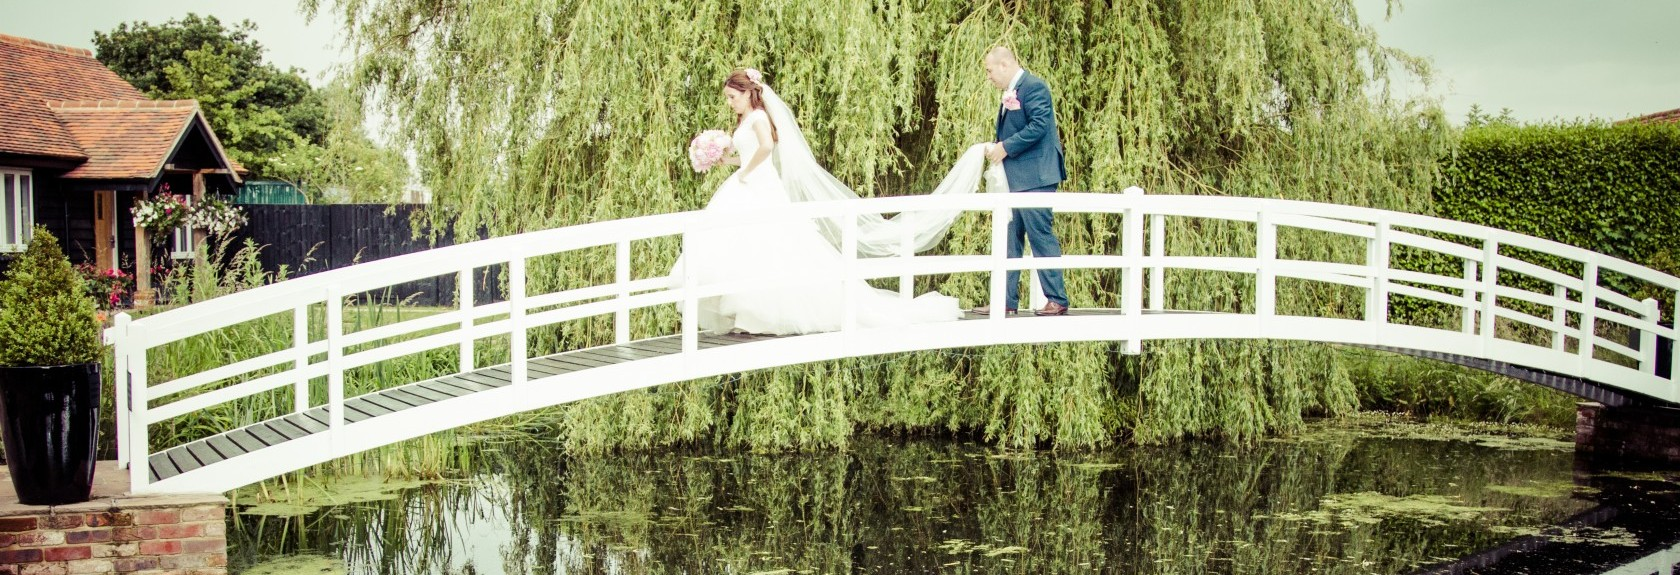 Essex Wedding Photography, High House Bridge